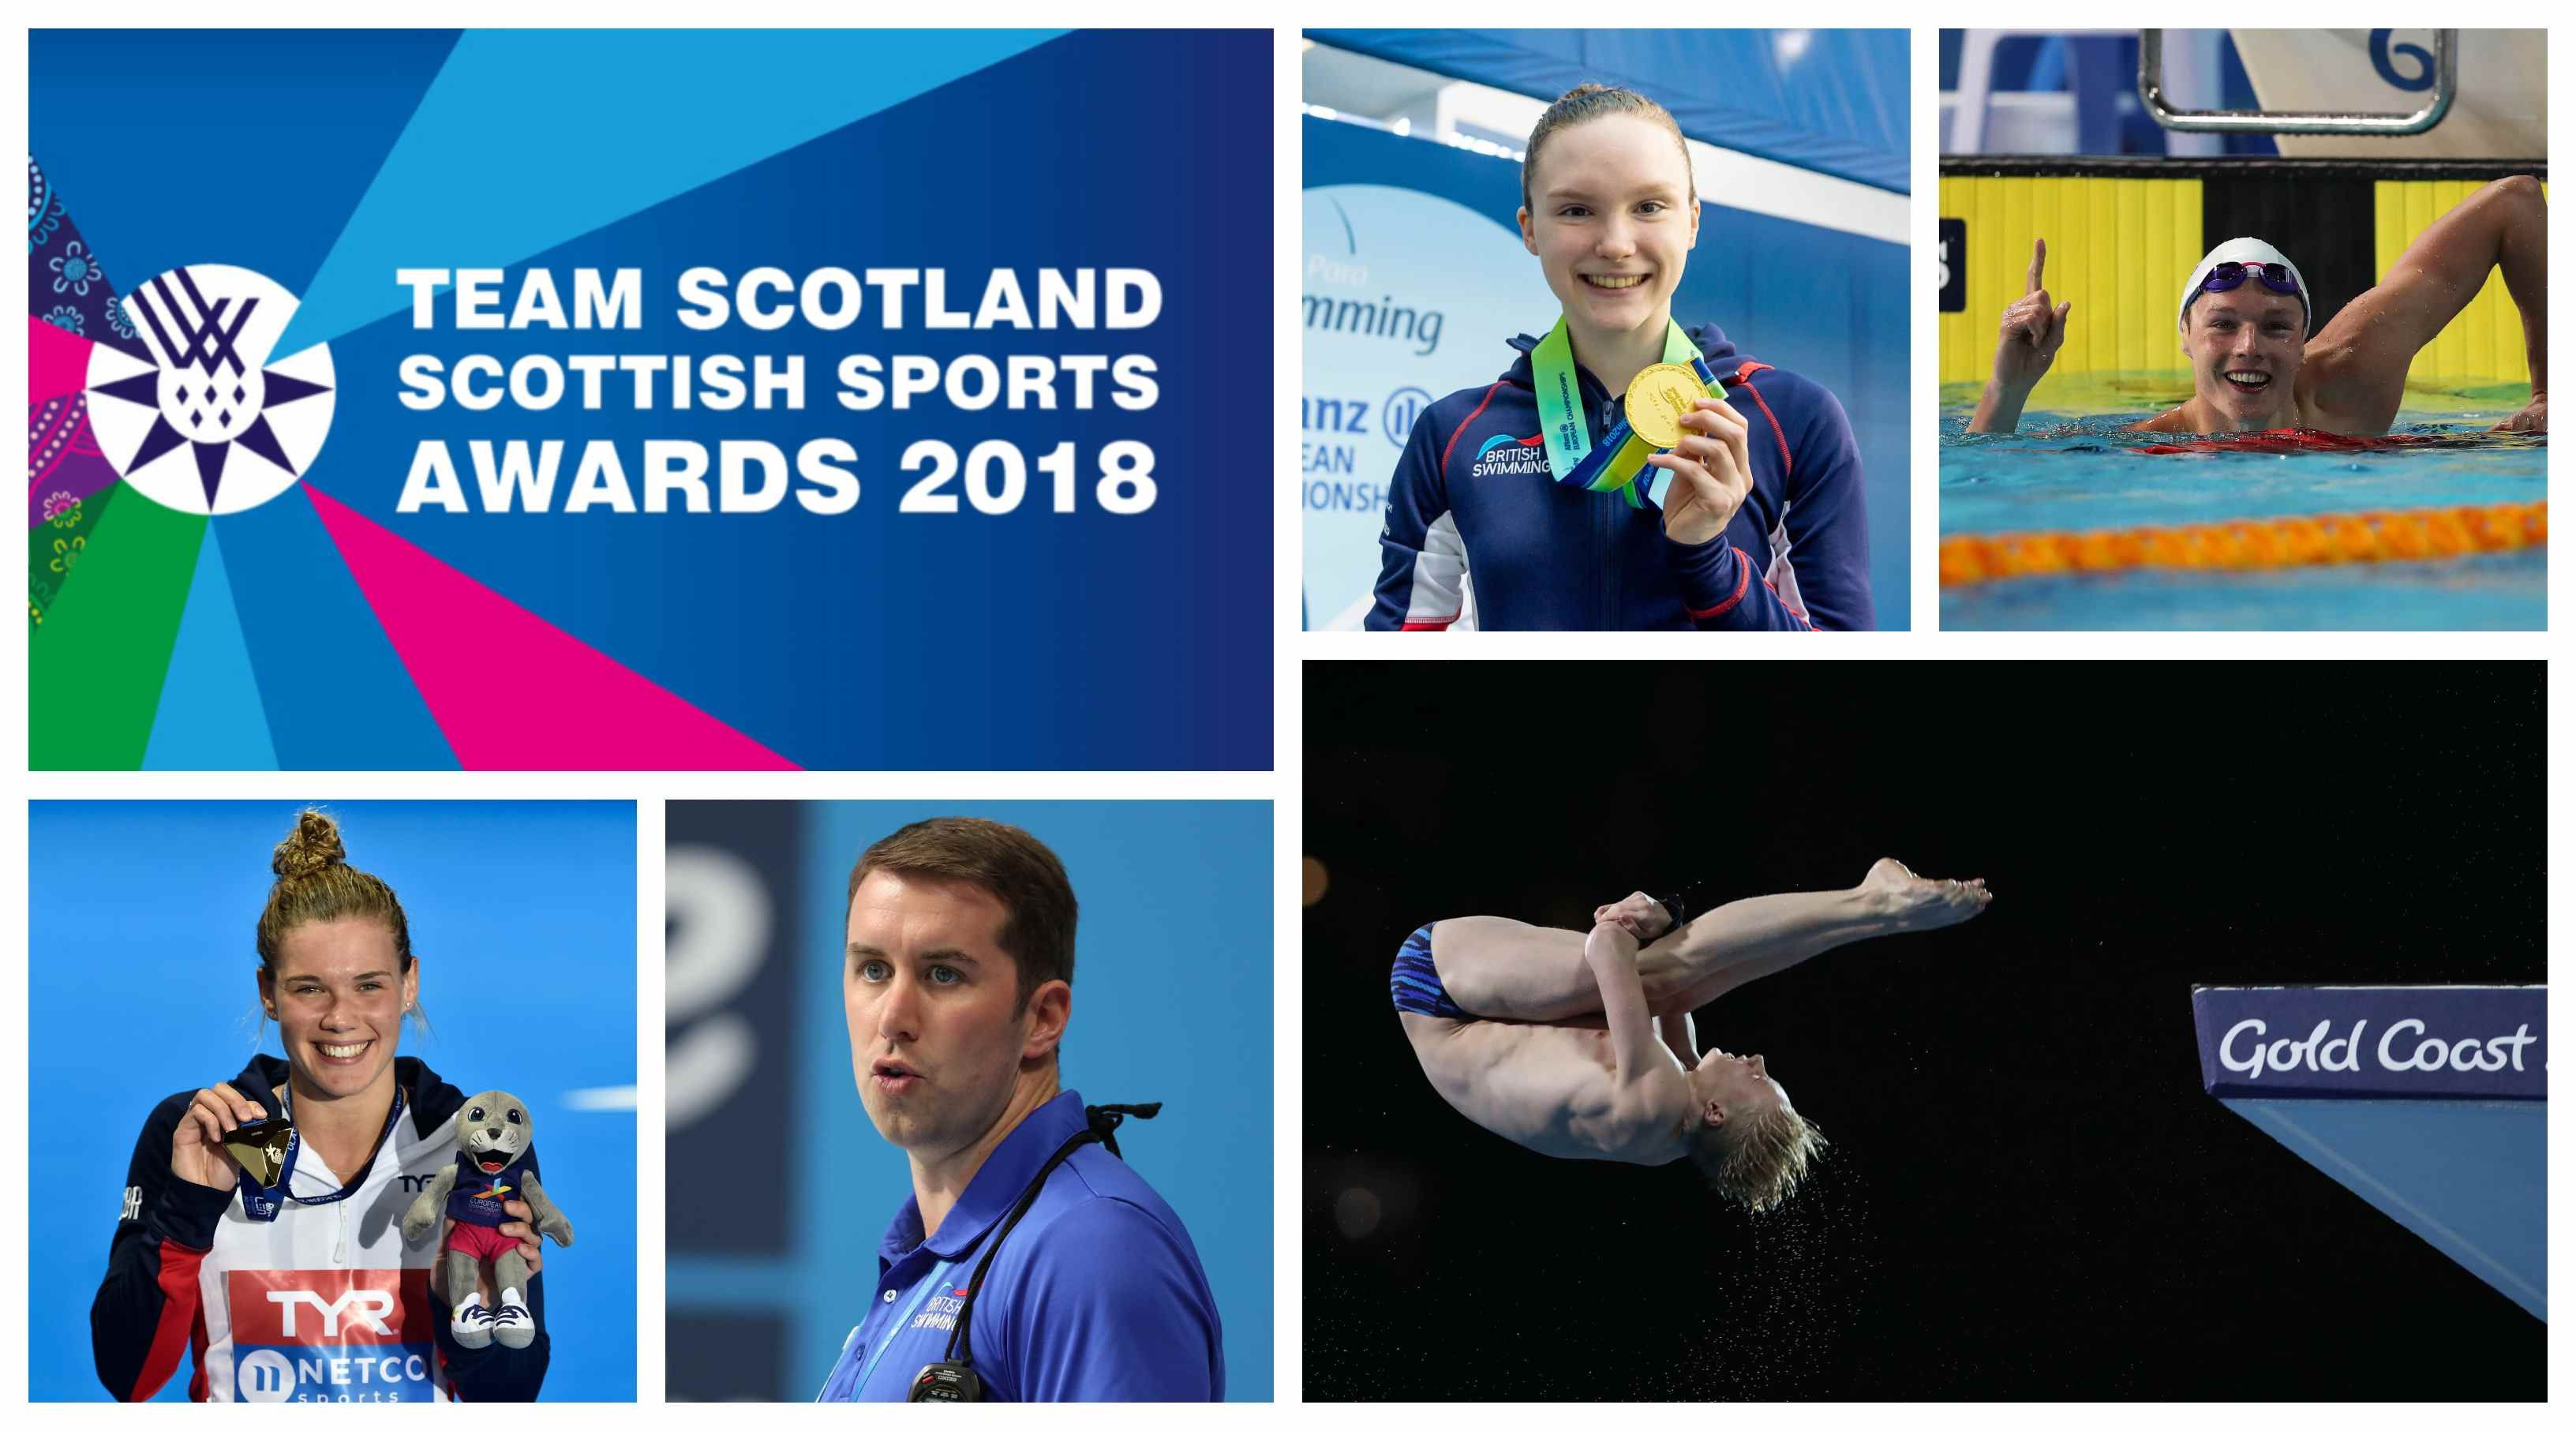 Team Scotland Awards